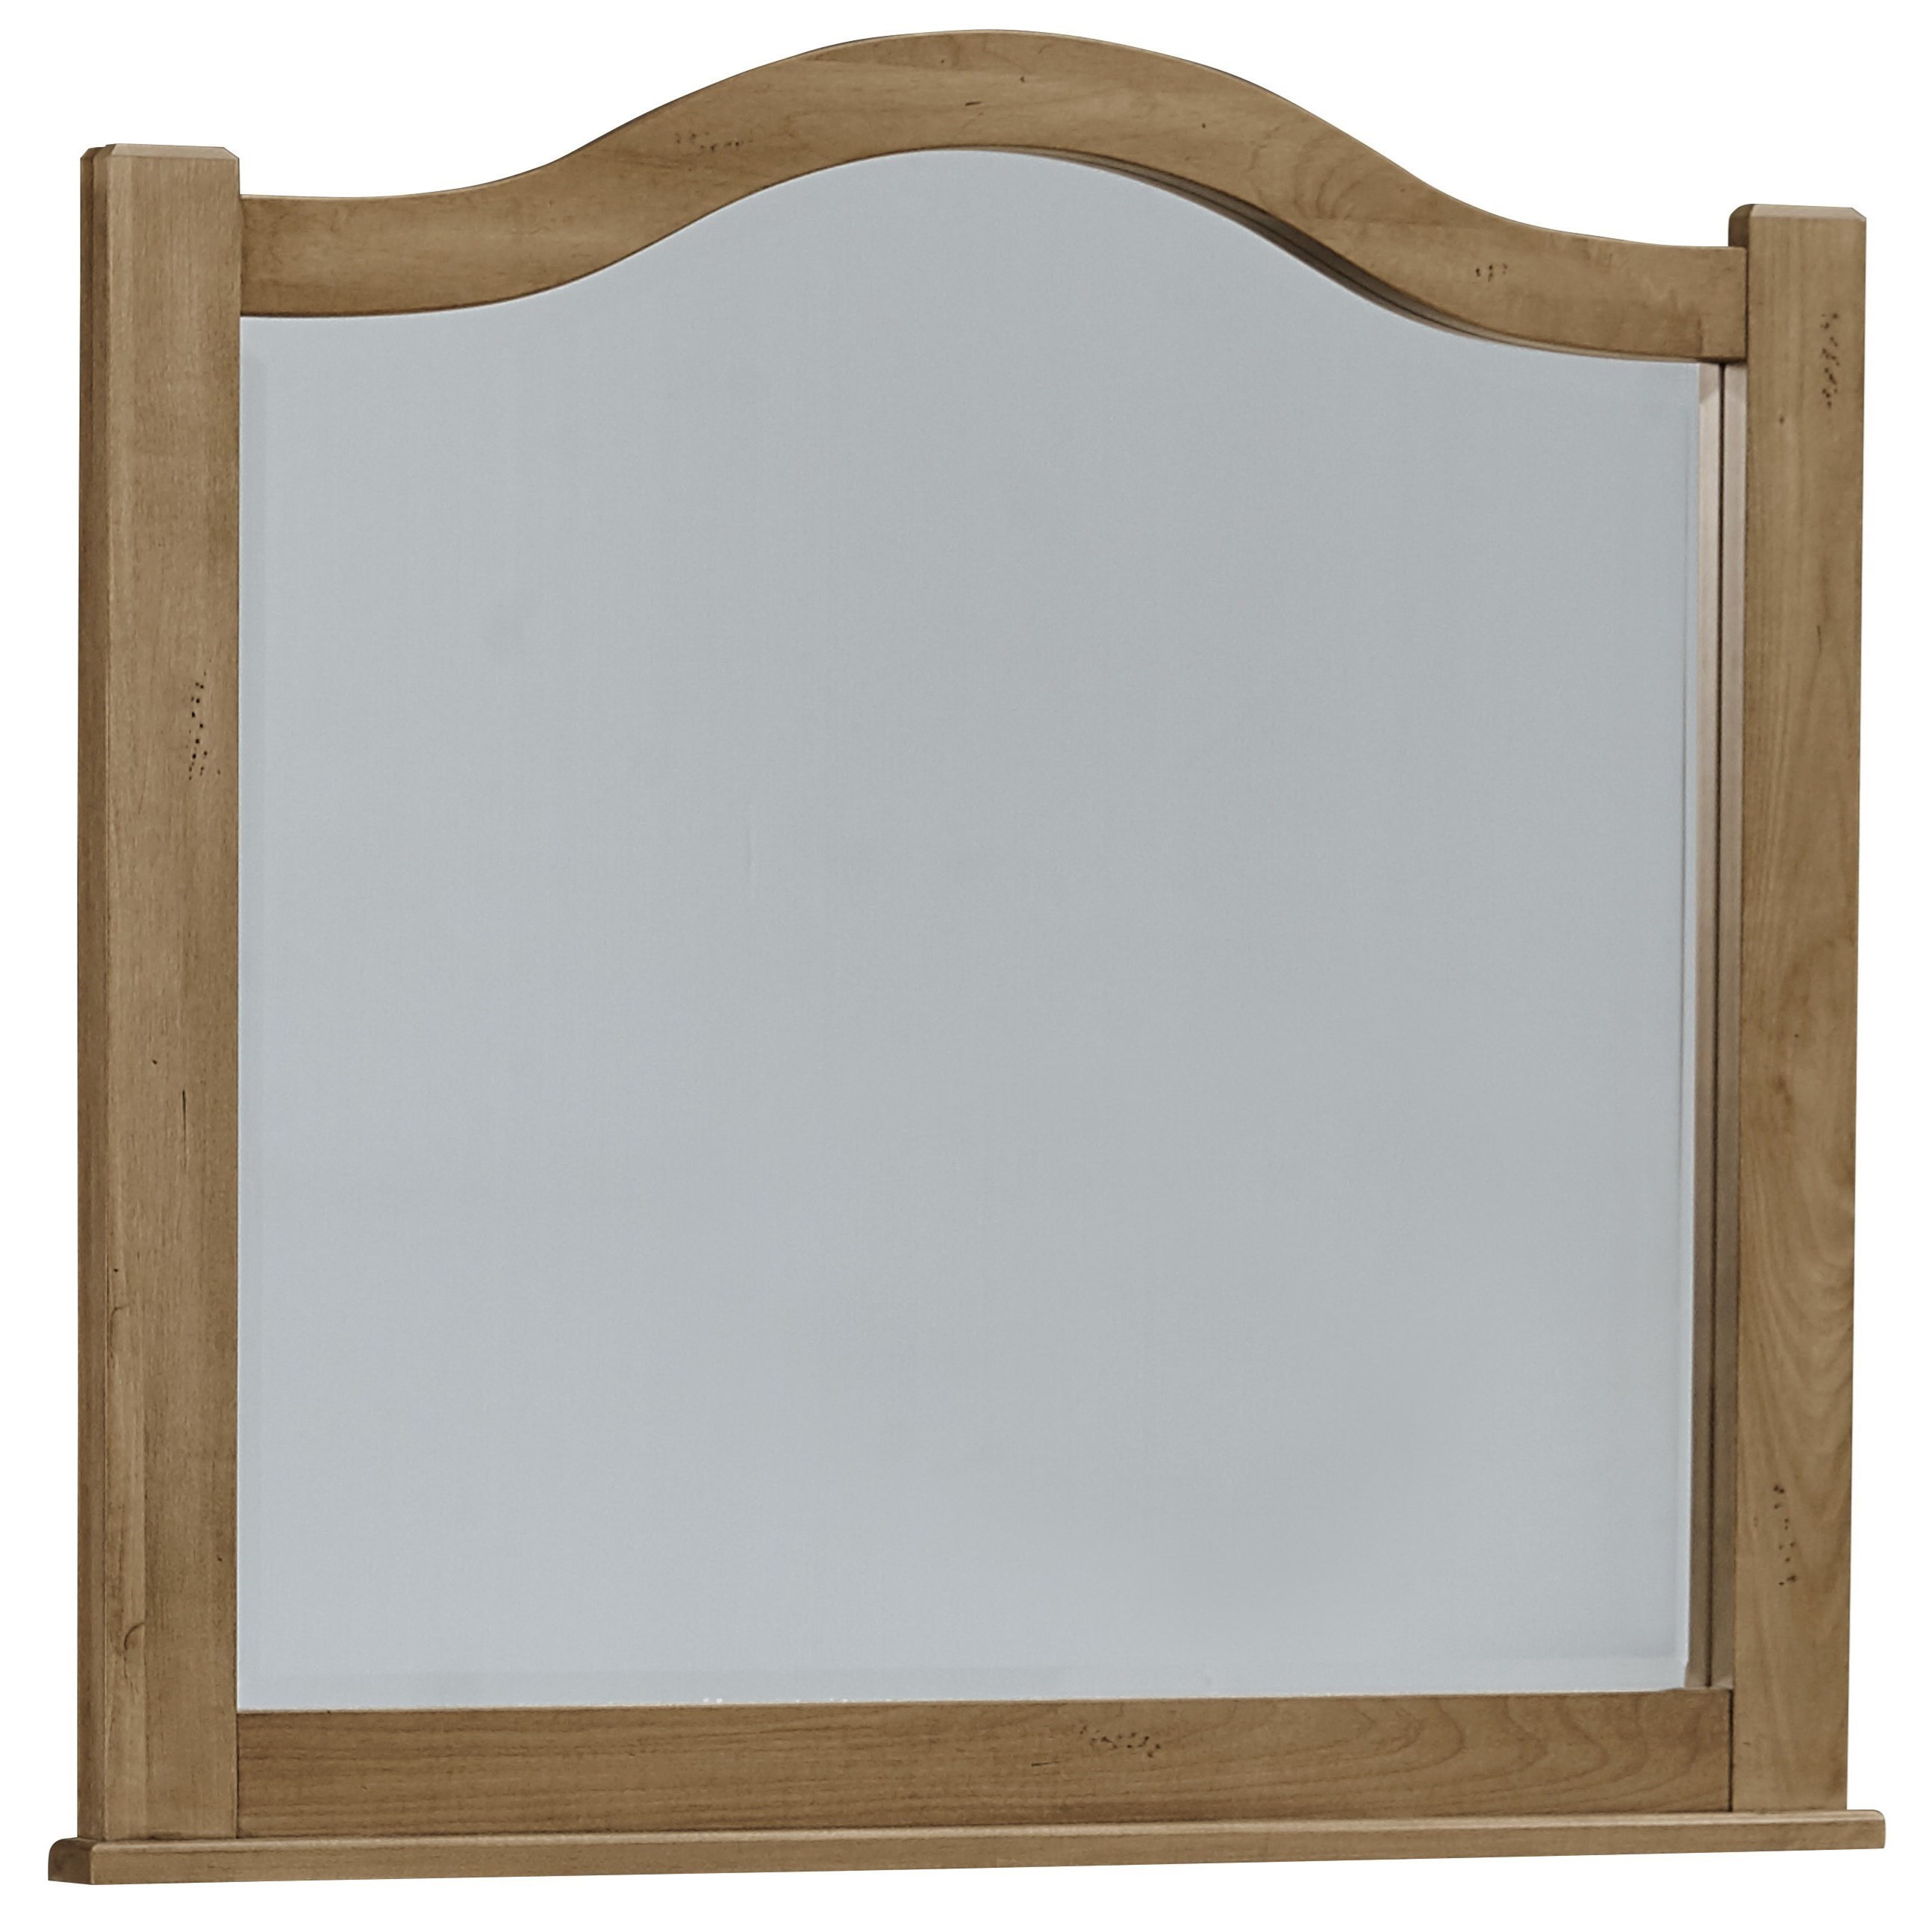 Vaughan Bassett American Maple Arched Mirror   Beveled Glass